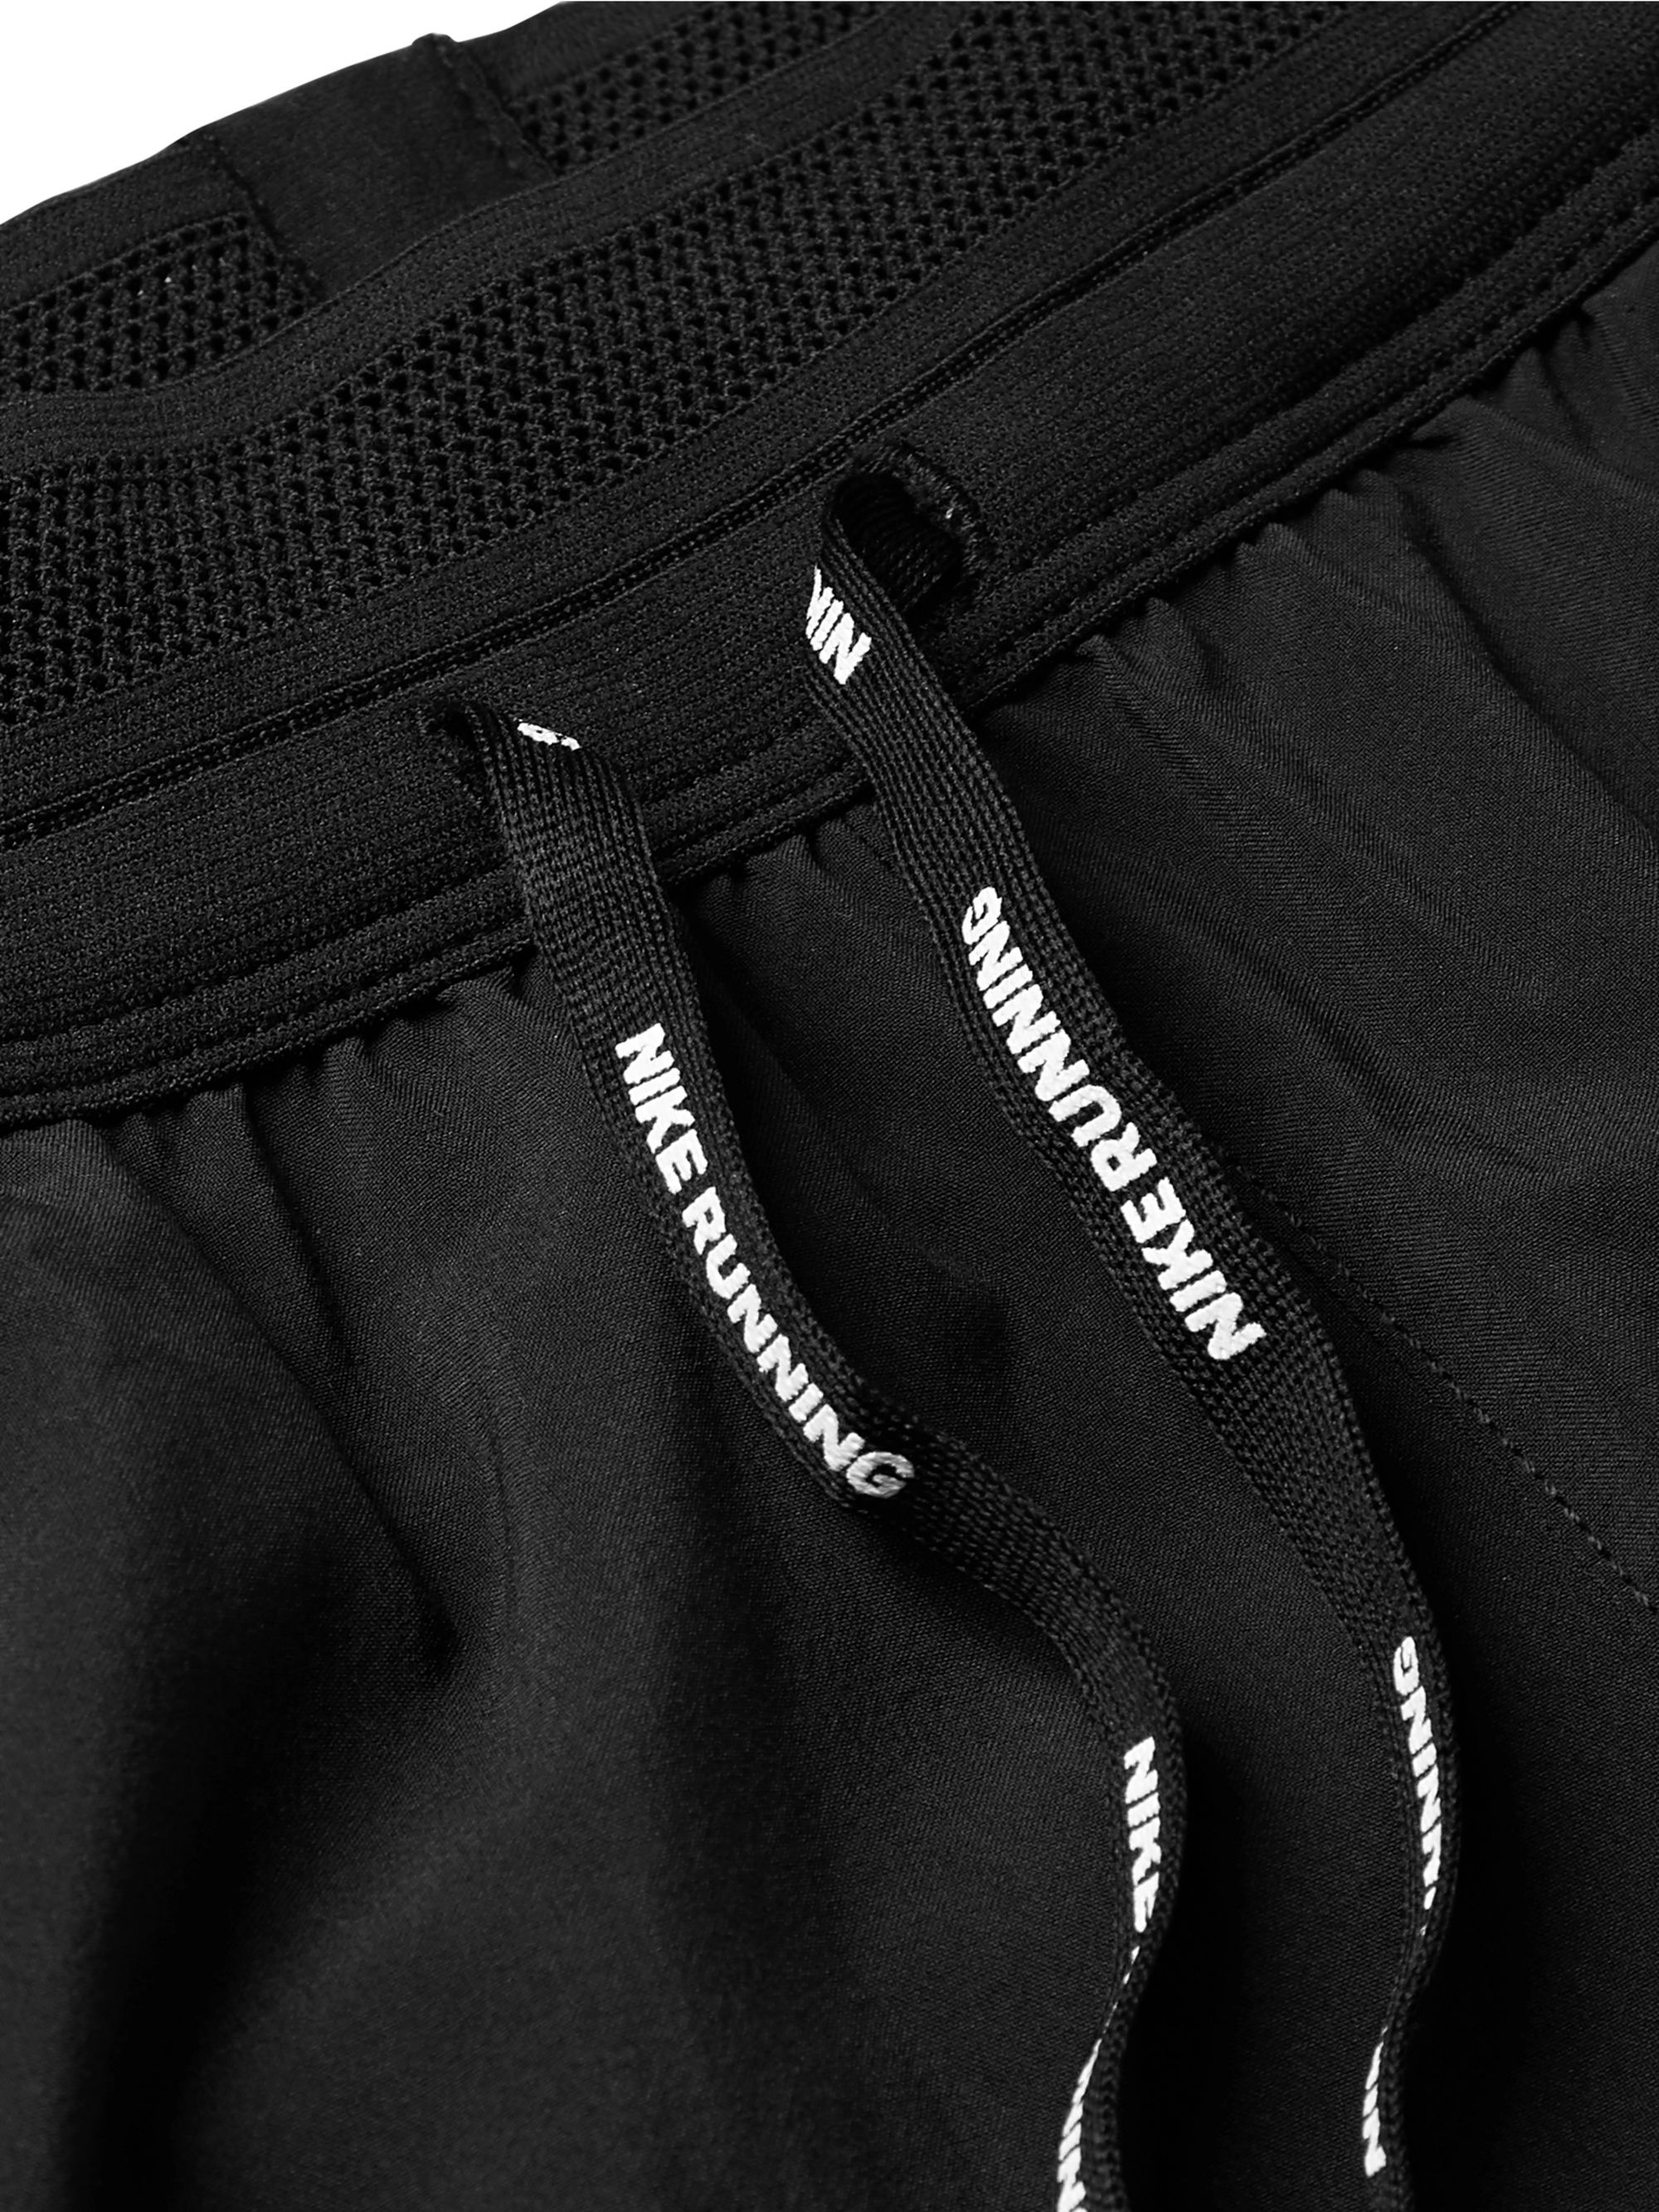 Nike Running Flex Swift Dri-FIT Shorts